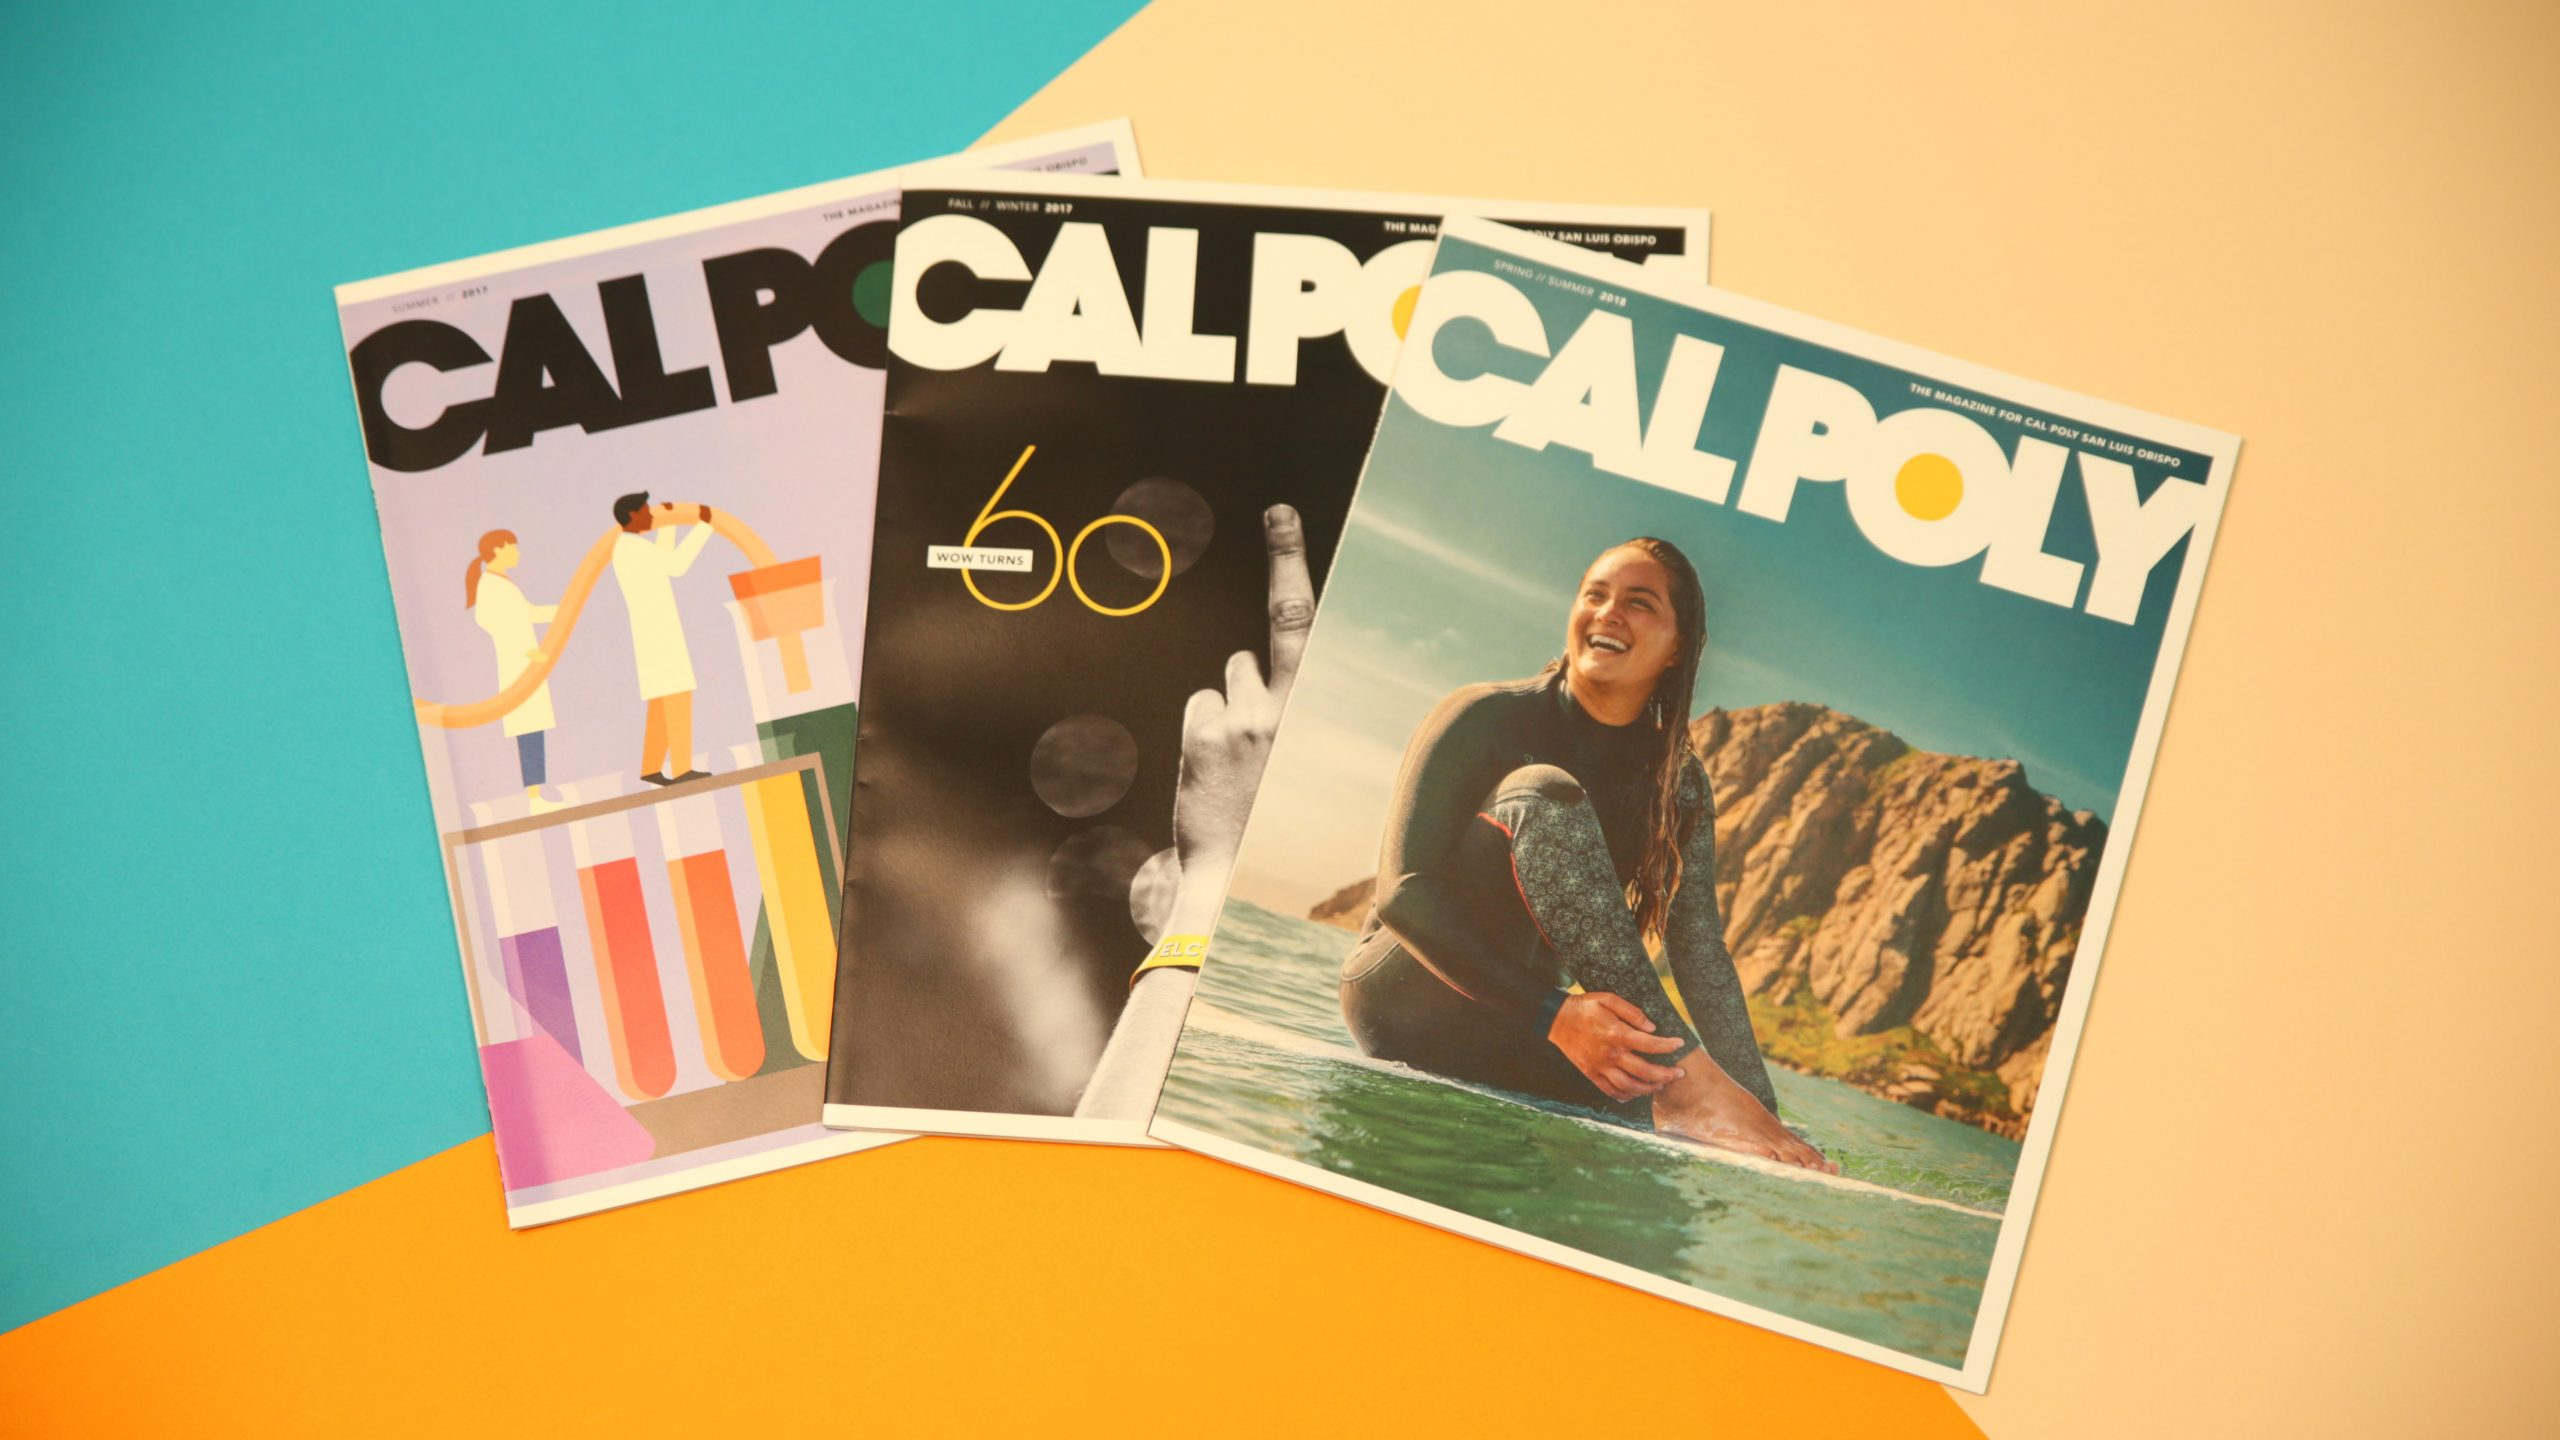 Three issues of Cal Poly Magazine arranges on an orange, blue and creme background.